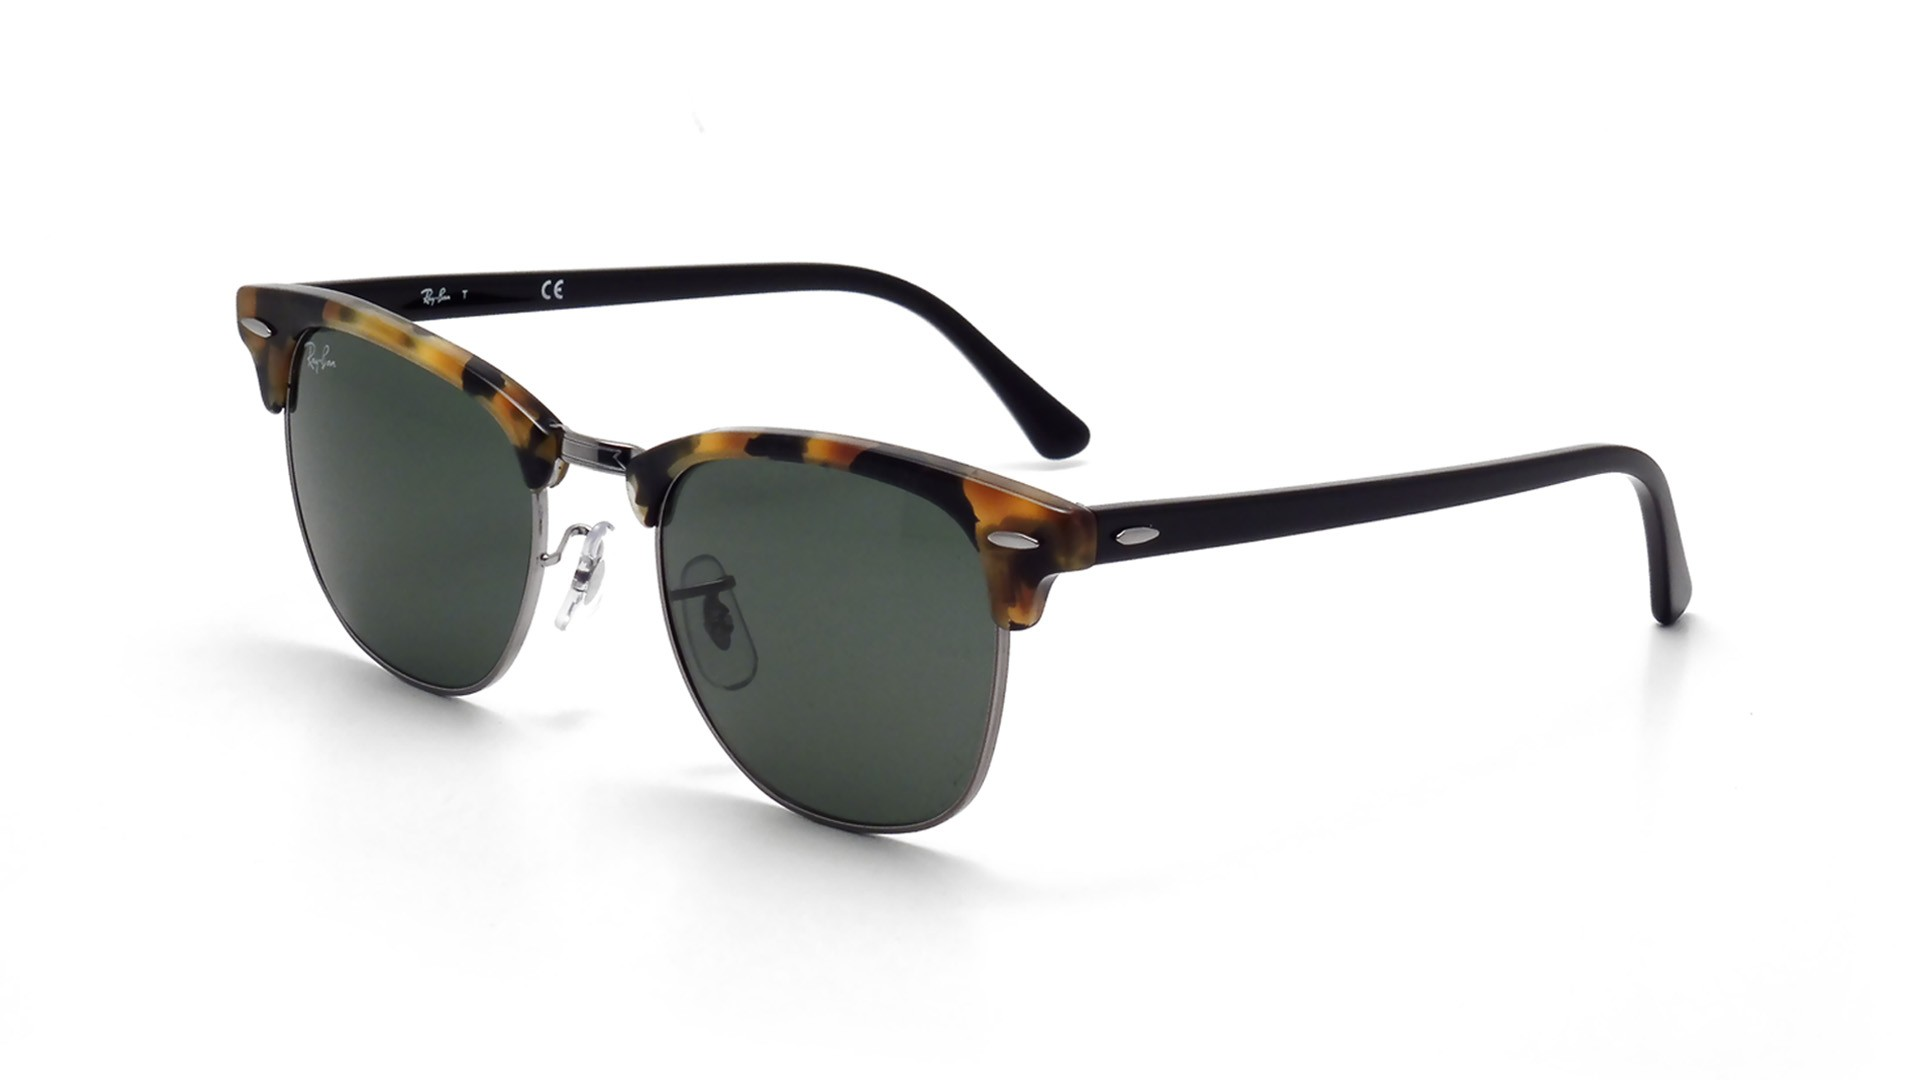 6302945a0cb Sunglasses Ray-Ban Clubmaster Fleck Tortoise G15 RB3016 1157 49-21 Small